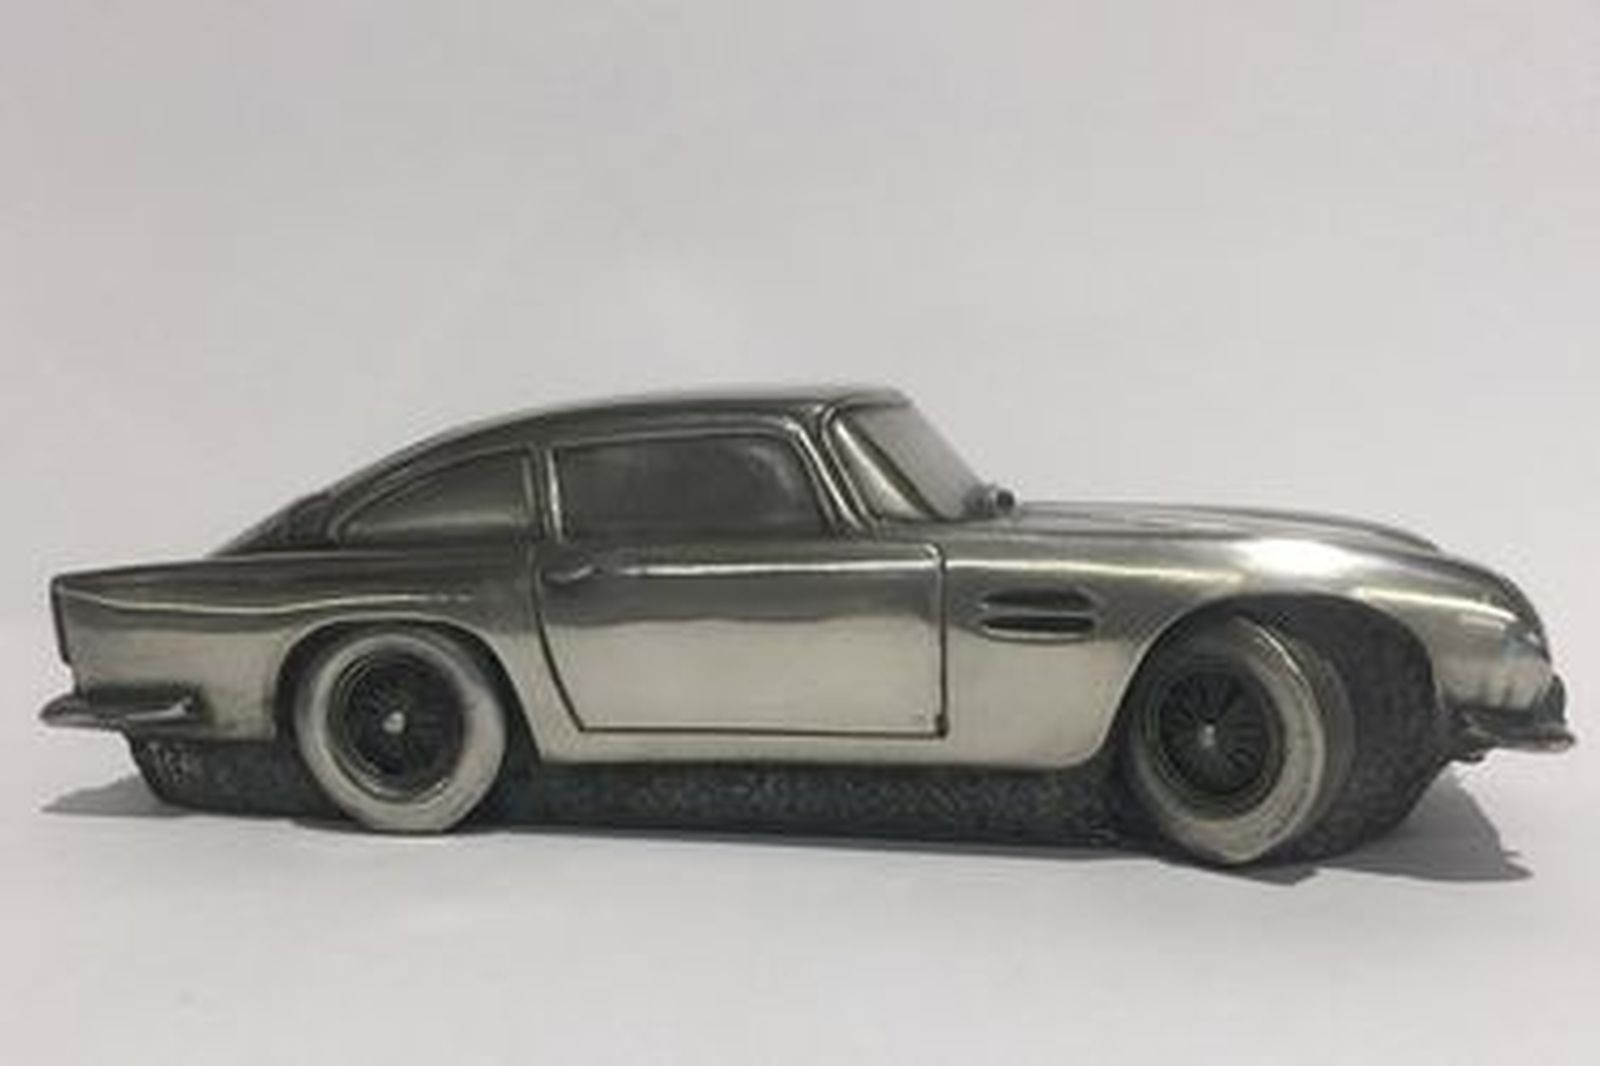 Pewter Model Car - Aston Martin